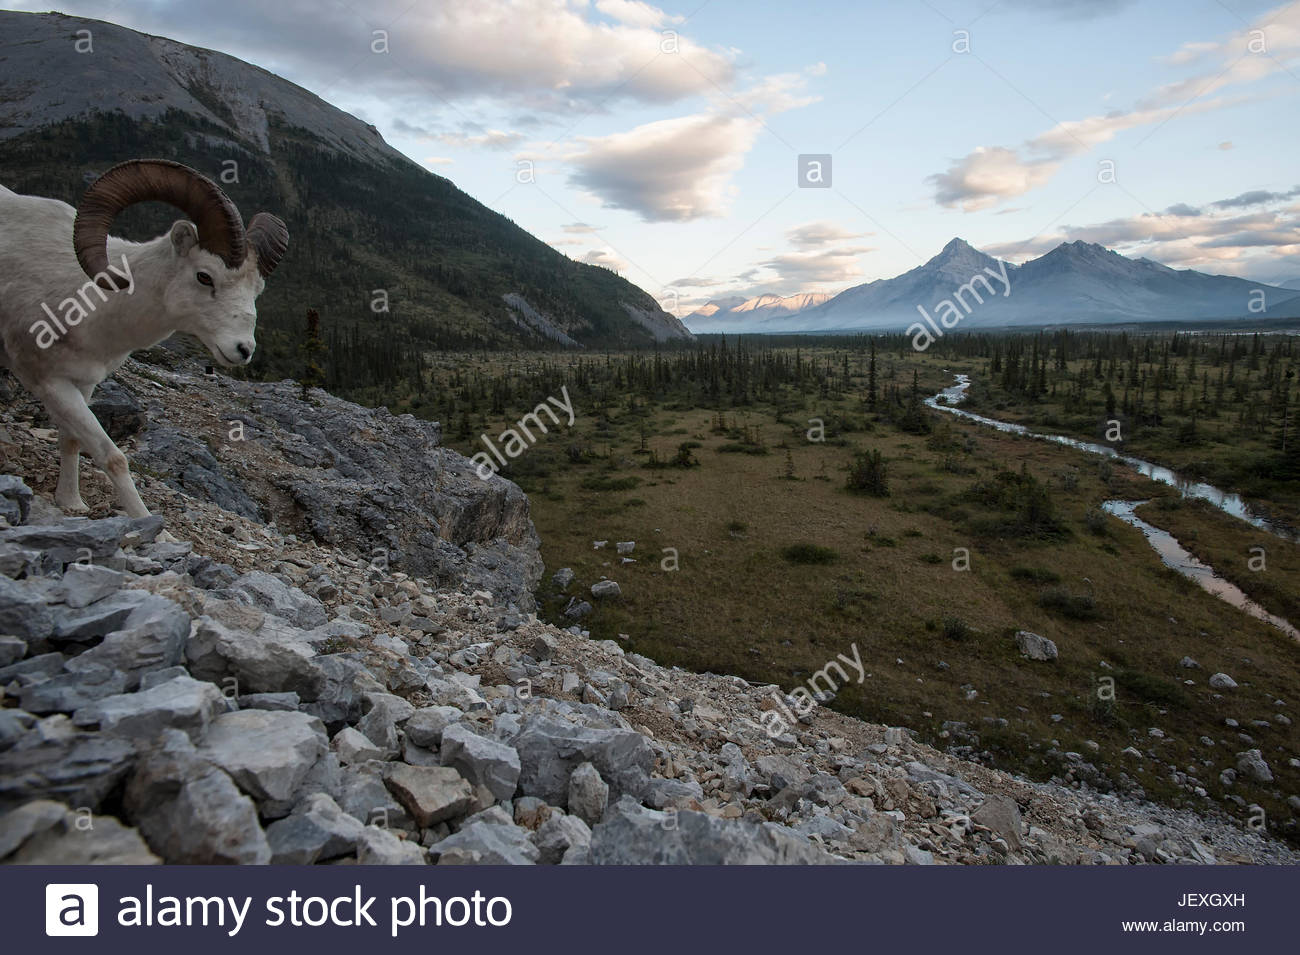 Dall's sheep, one of many animals that call this critical wilderness watershed home. These Dall's sheep, - Stock Image